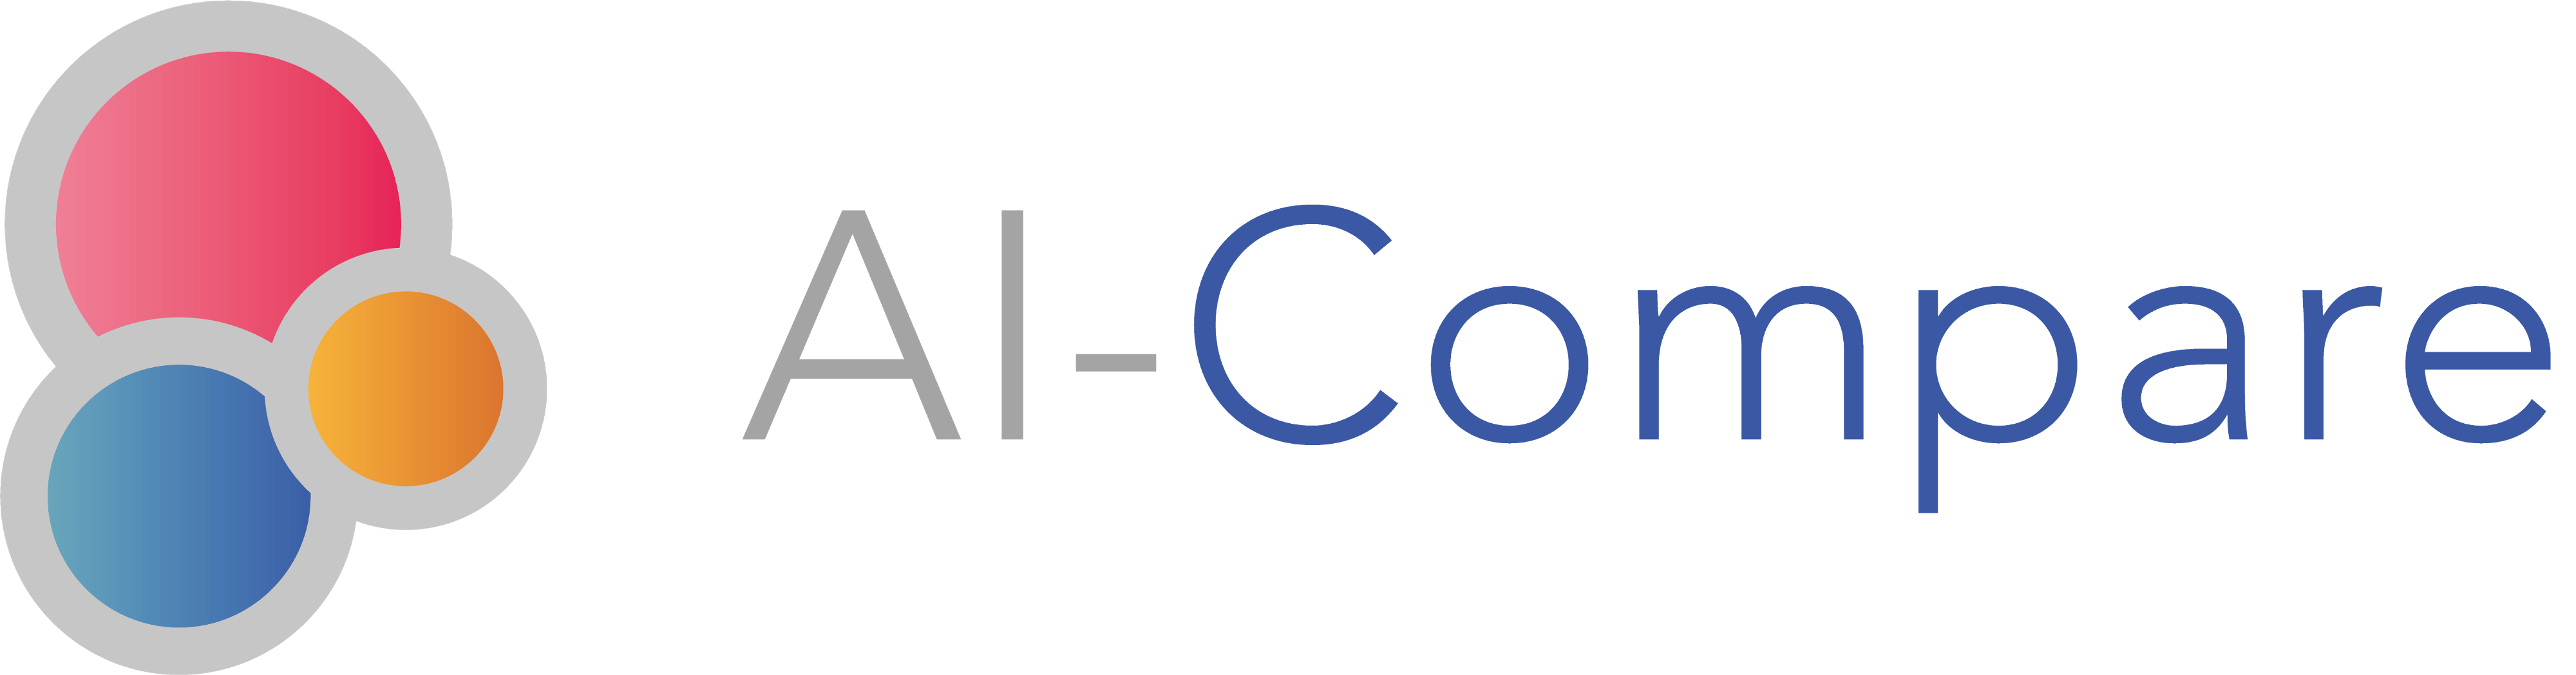 AI-Compare (www.ai-compare.com) — Search for, Compare and Use the best Artificial Intelligence APIs in the market